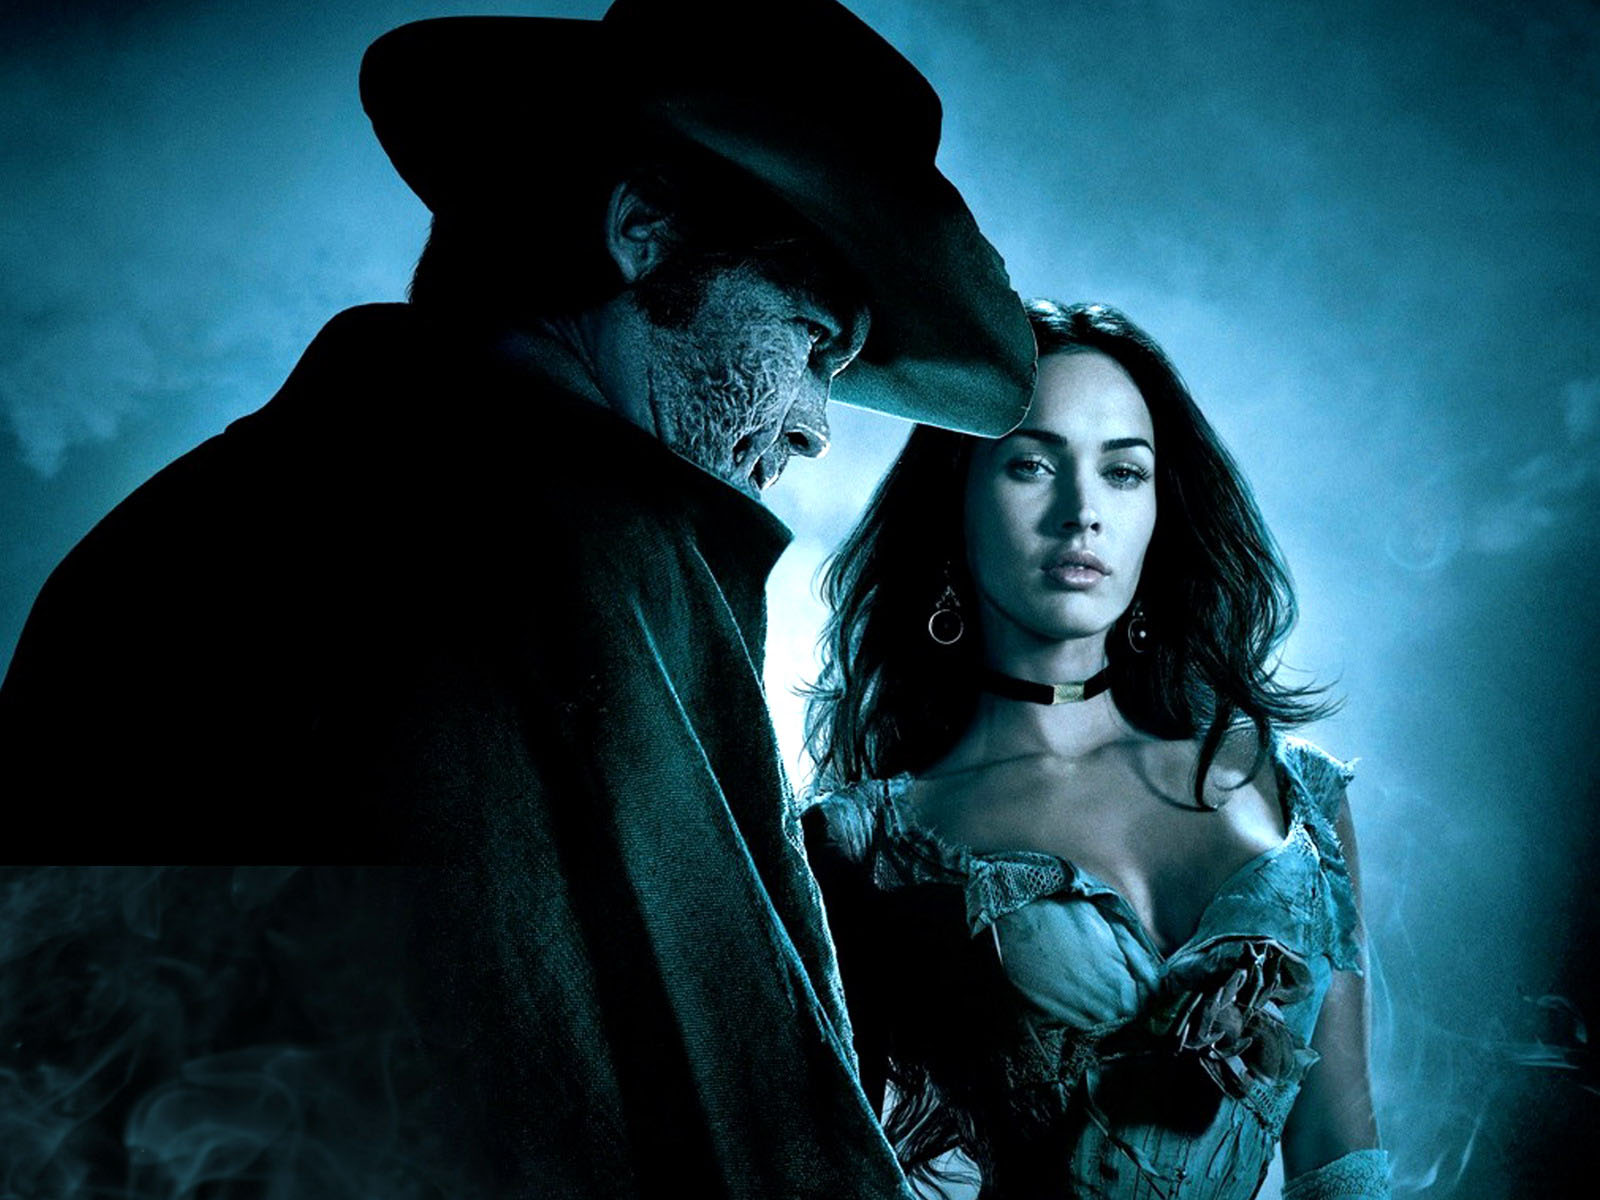 Horror Movies Wallpaper High Quality Wallpapers 1600x1200